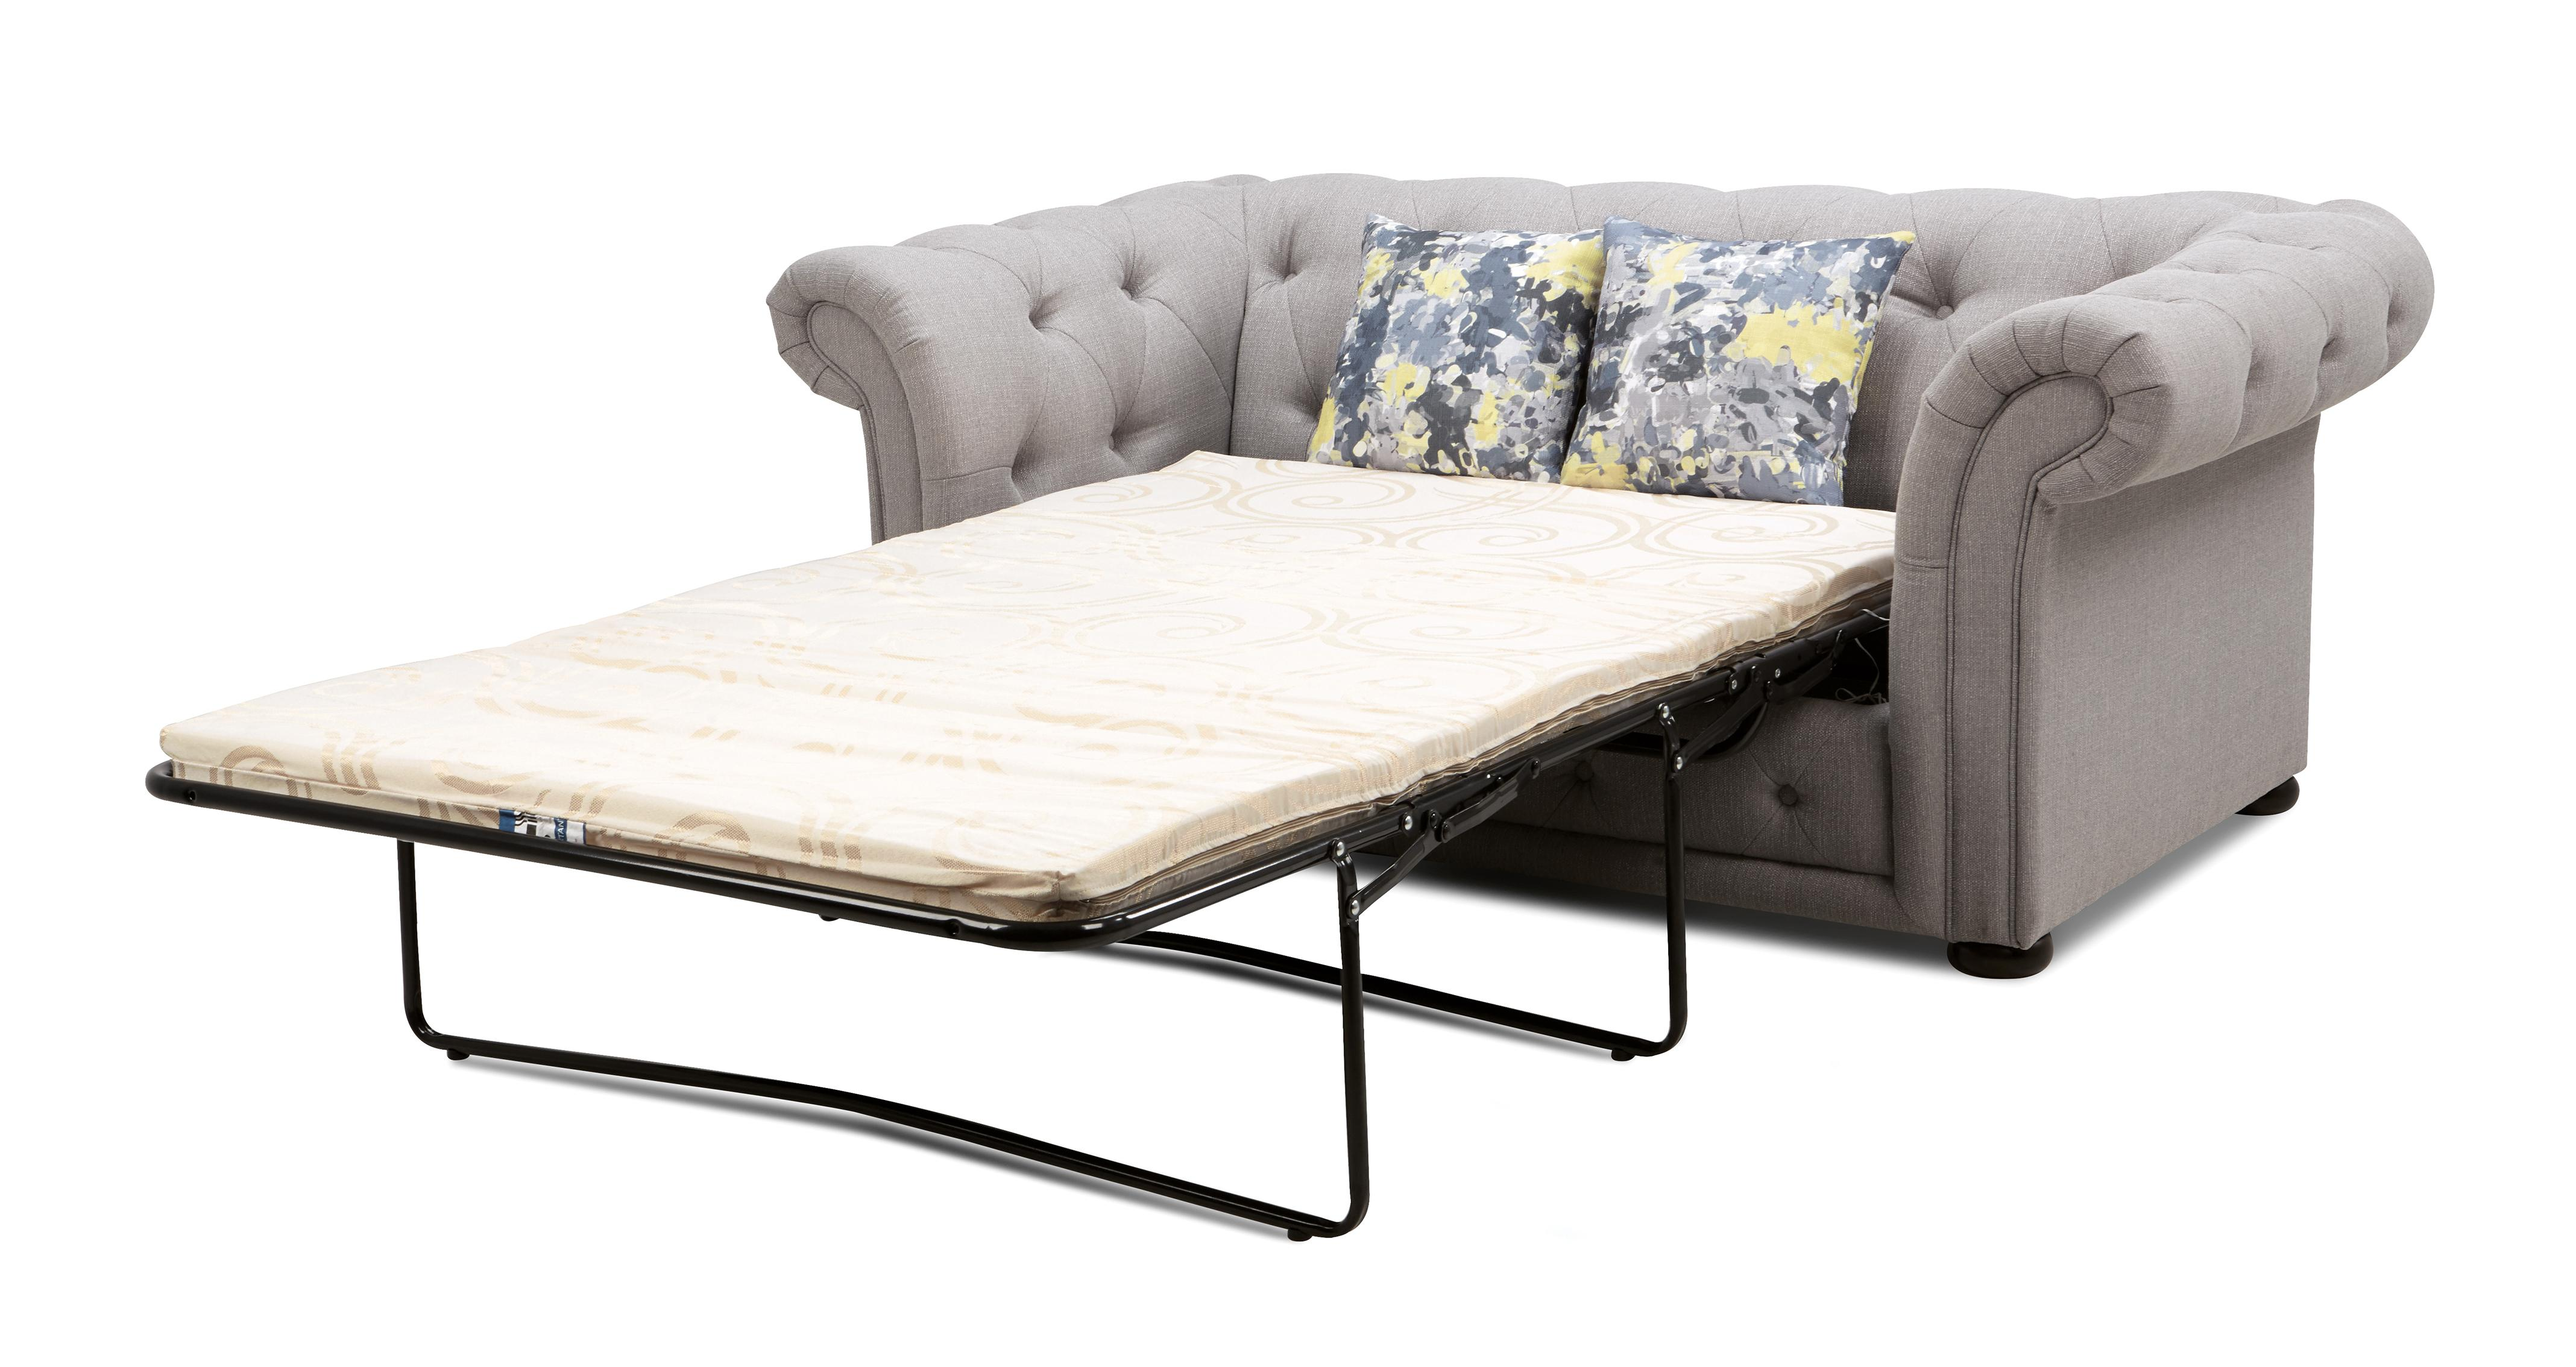 GXD Phoebe 2 Seater Sofa Bed